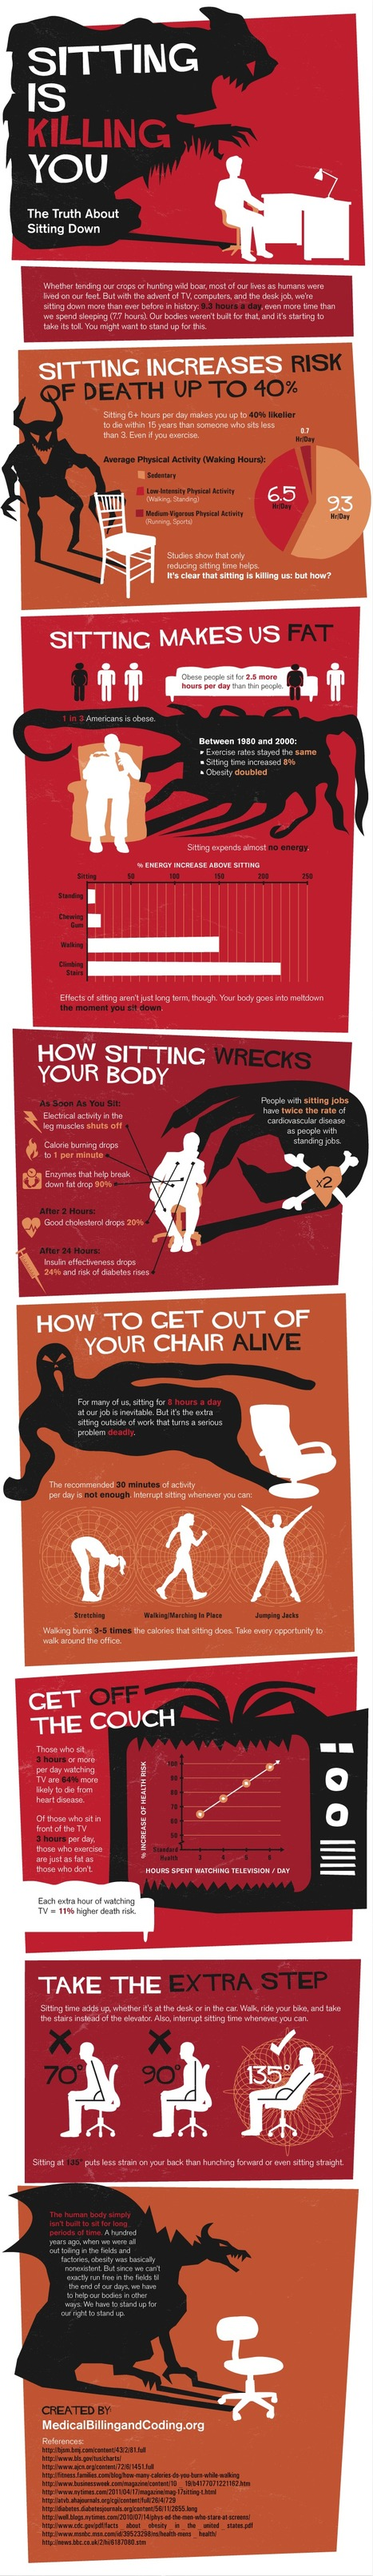 """Health Review - How Sitting all day Decreases Human Life 